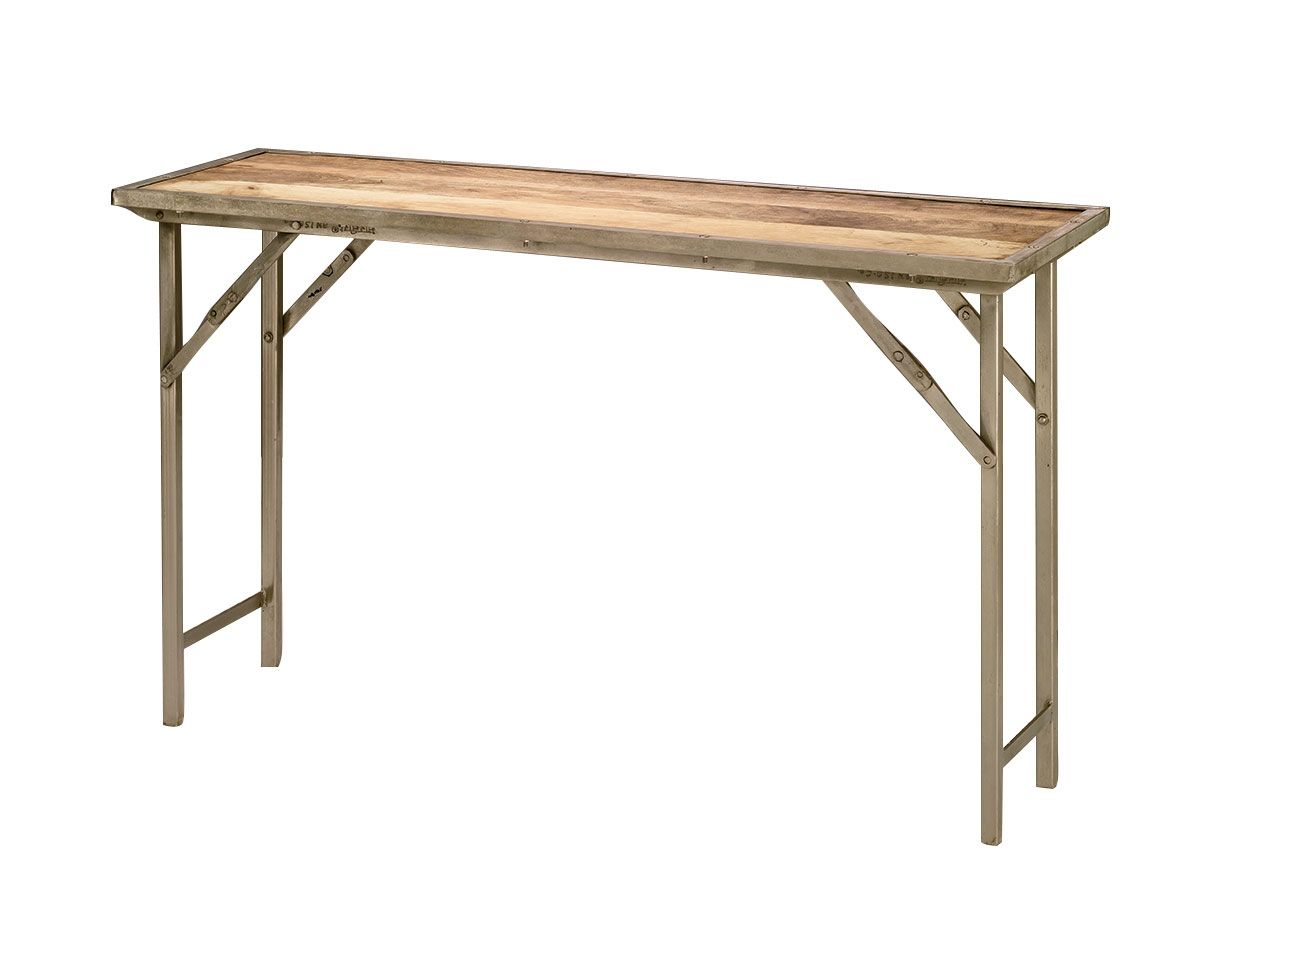 Charming Jamie Young Campaign Folding Console Table